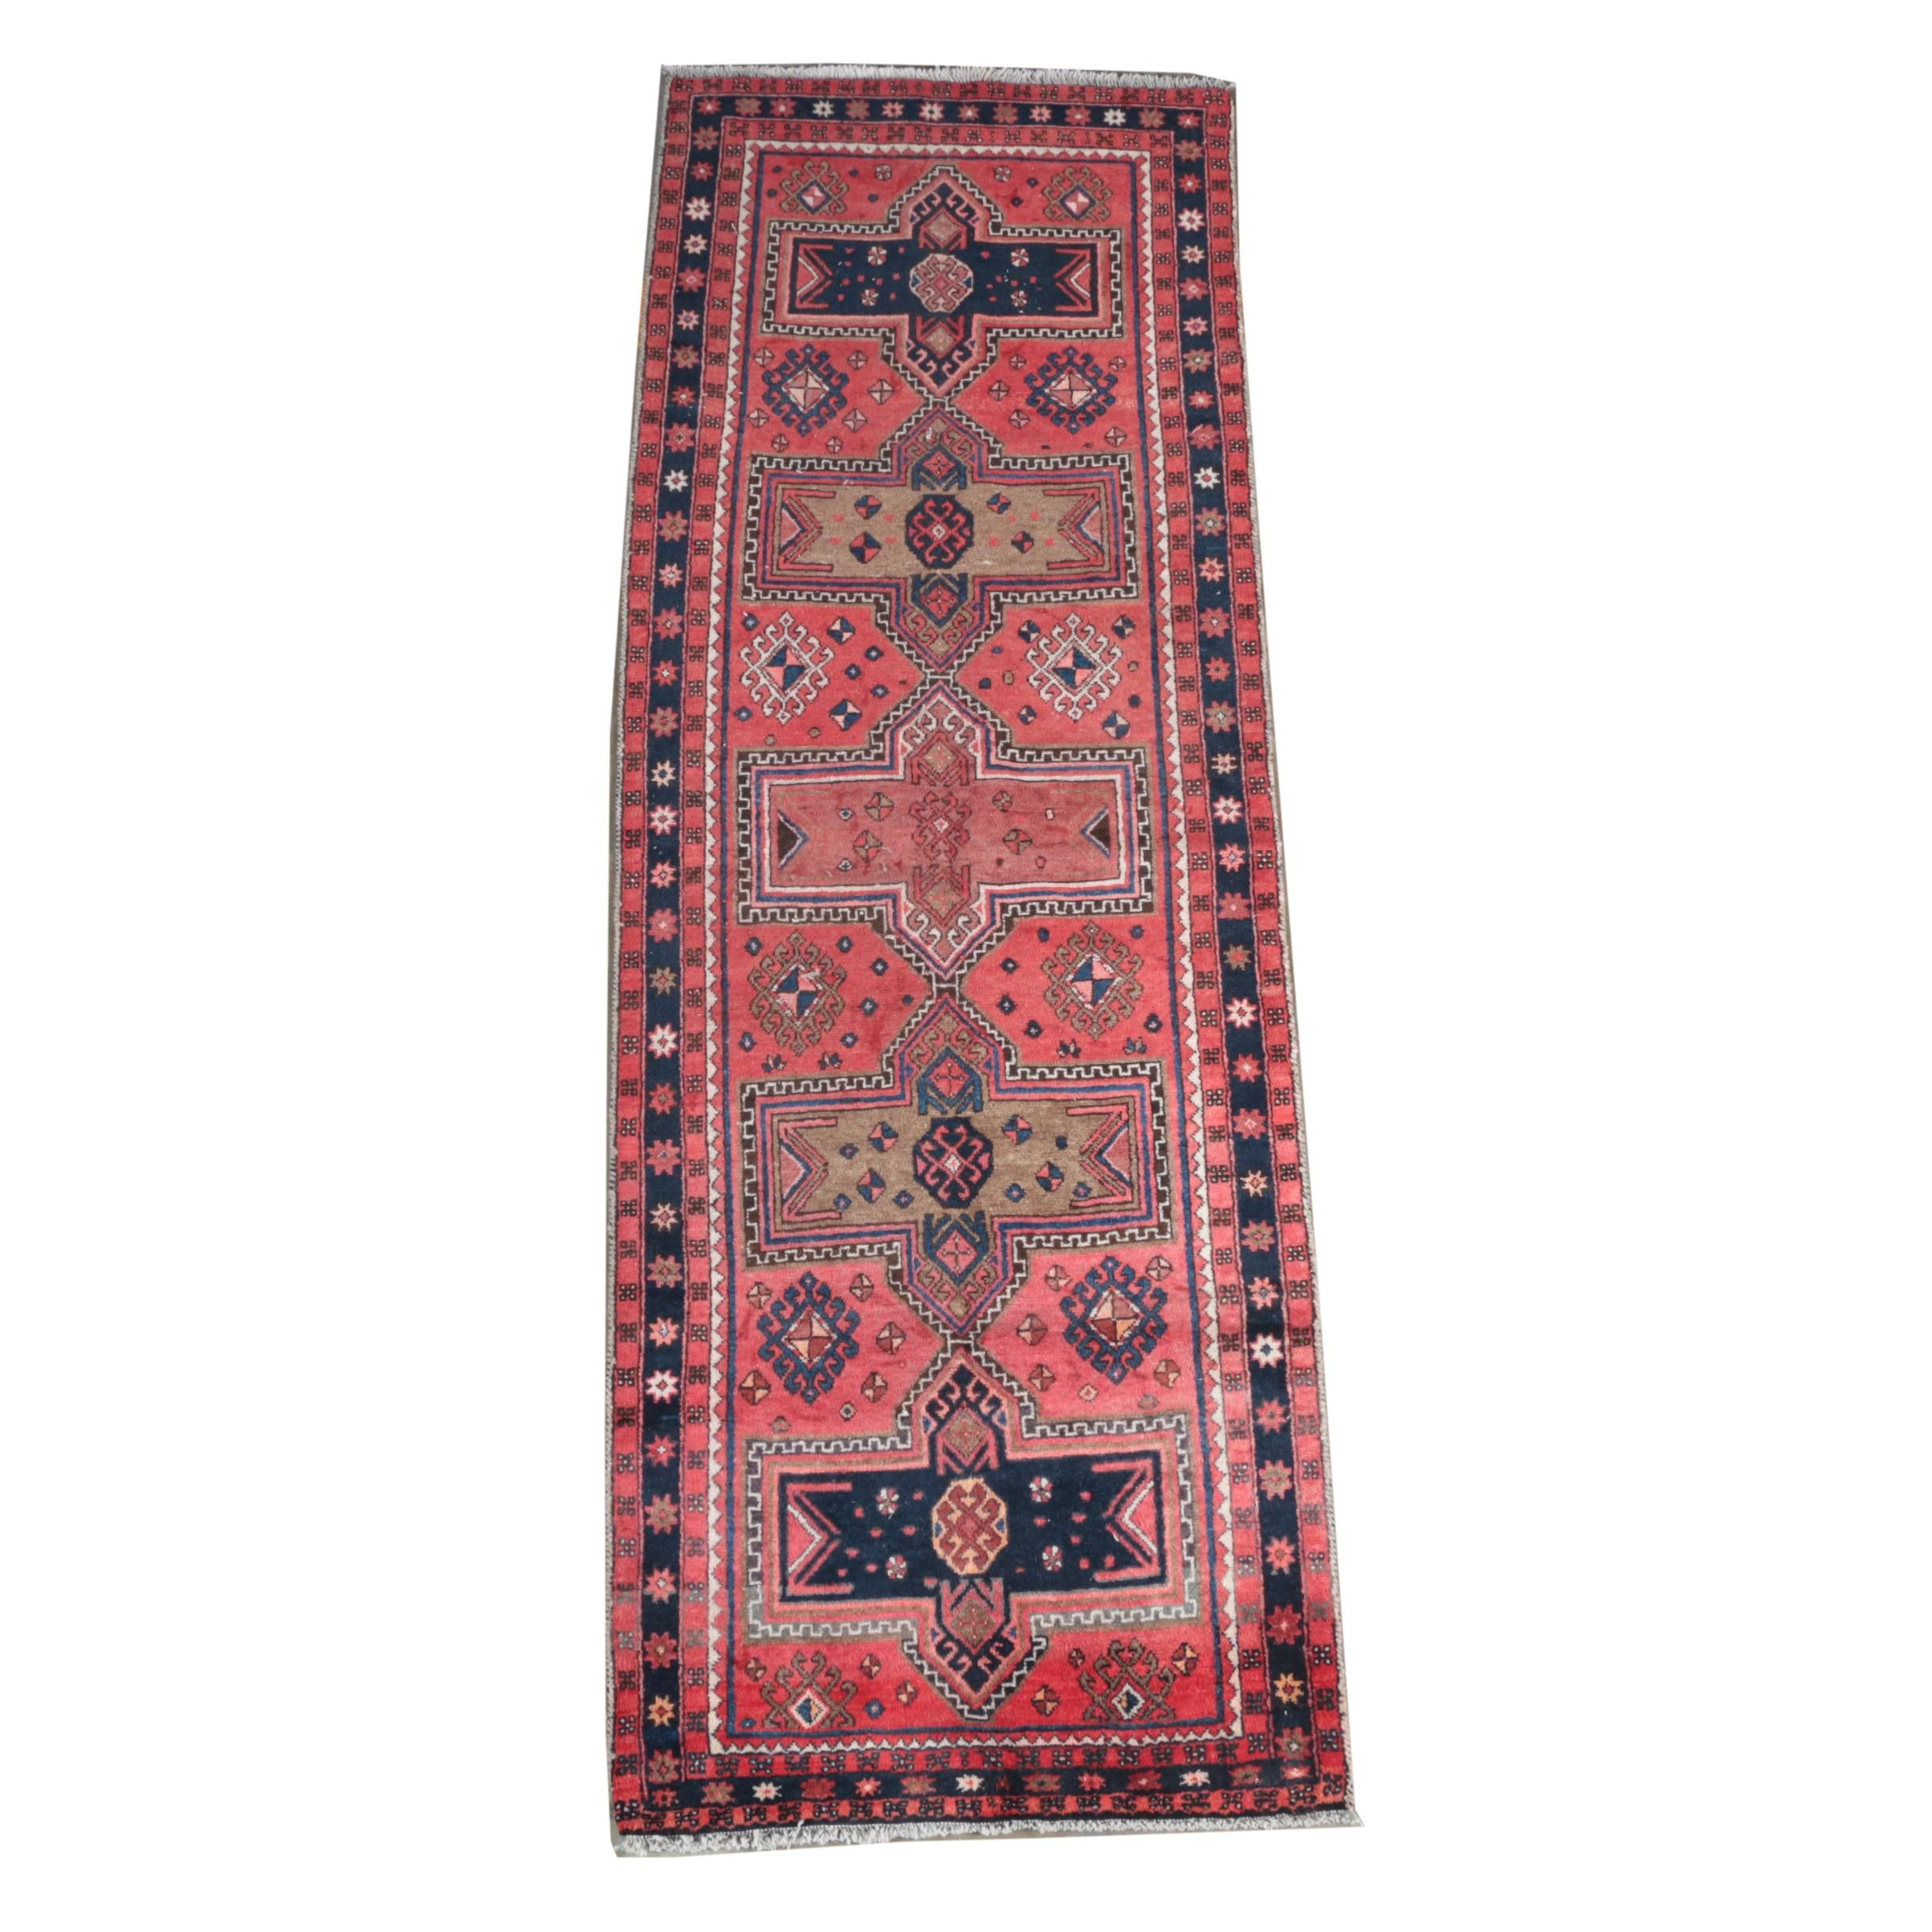 Hand-Knotted Kazak Carpet Runner